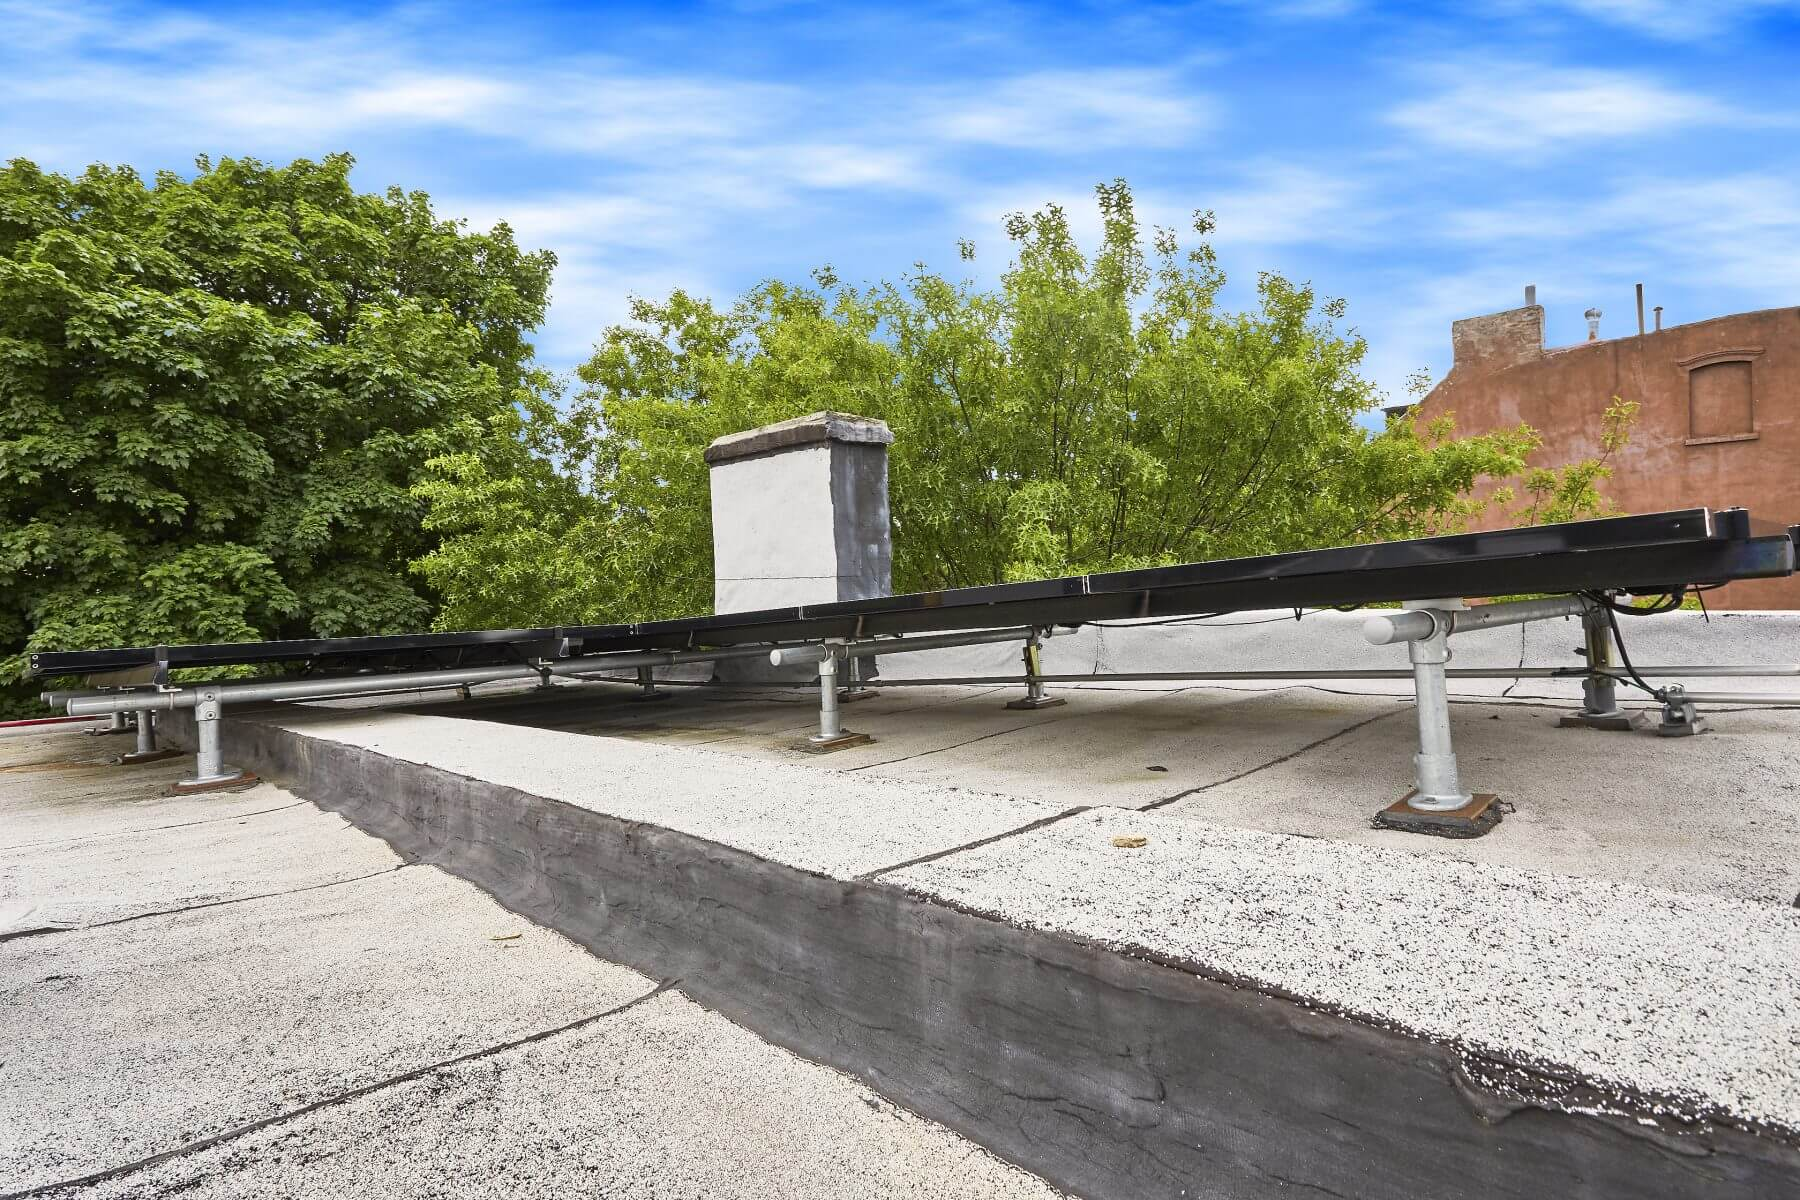 Solar arrays pitched at 2 degrees to avoid visibility from the street.